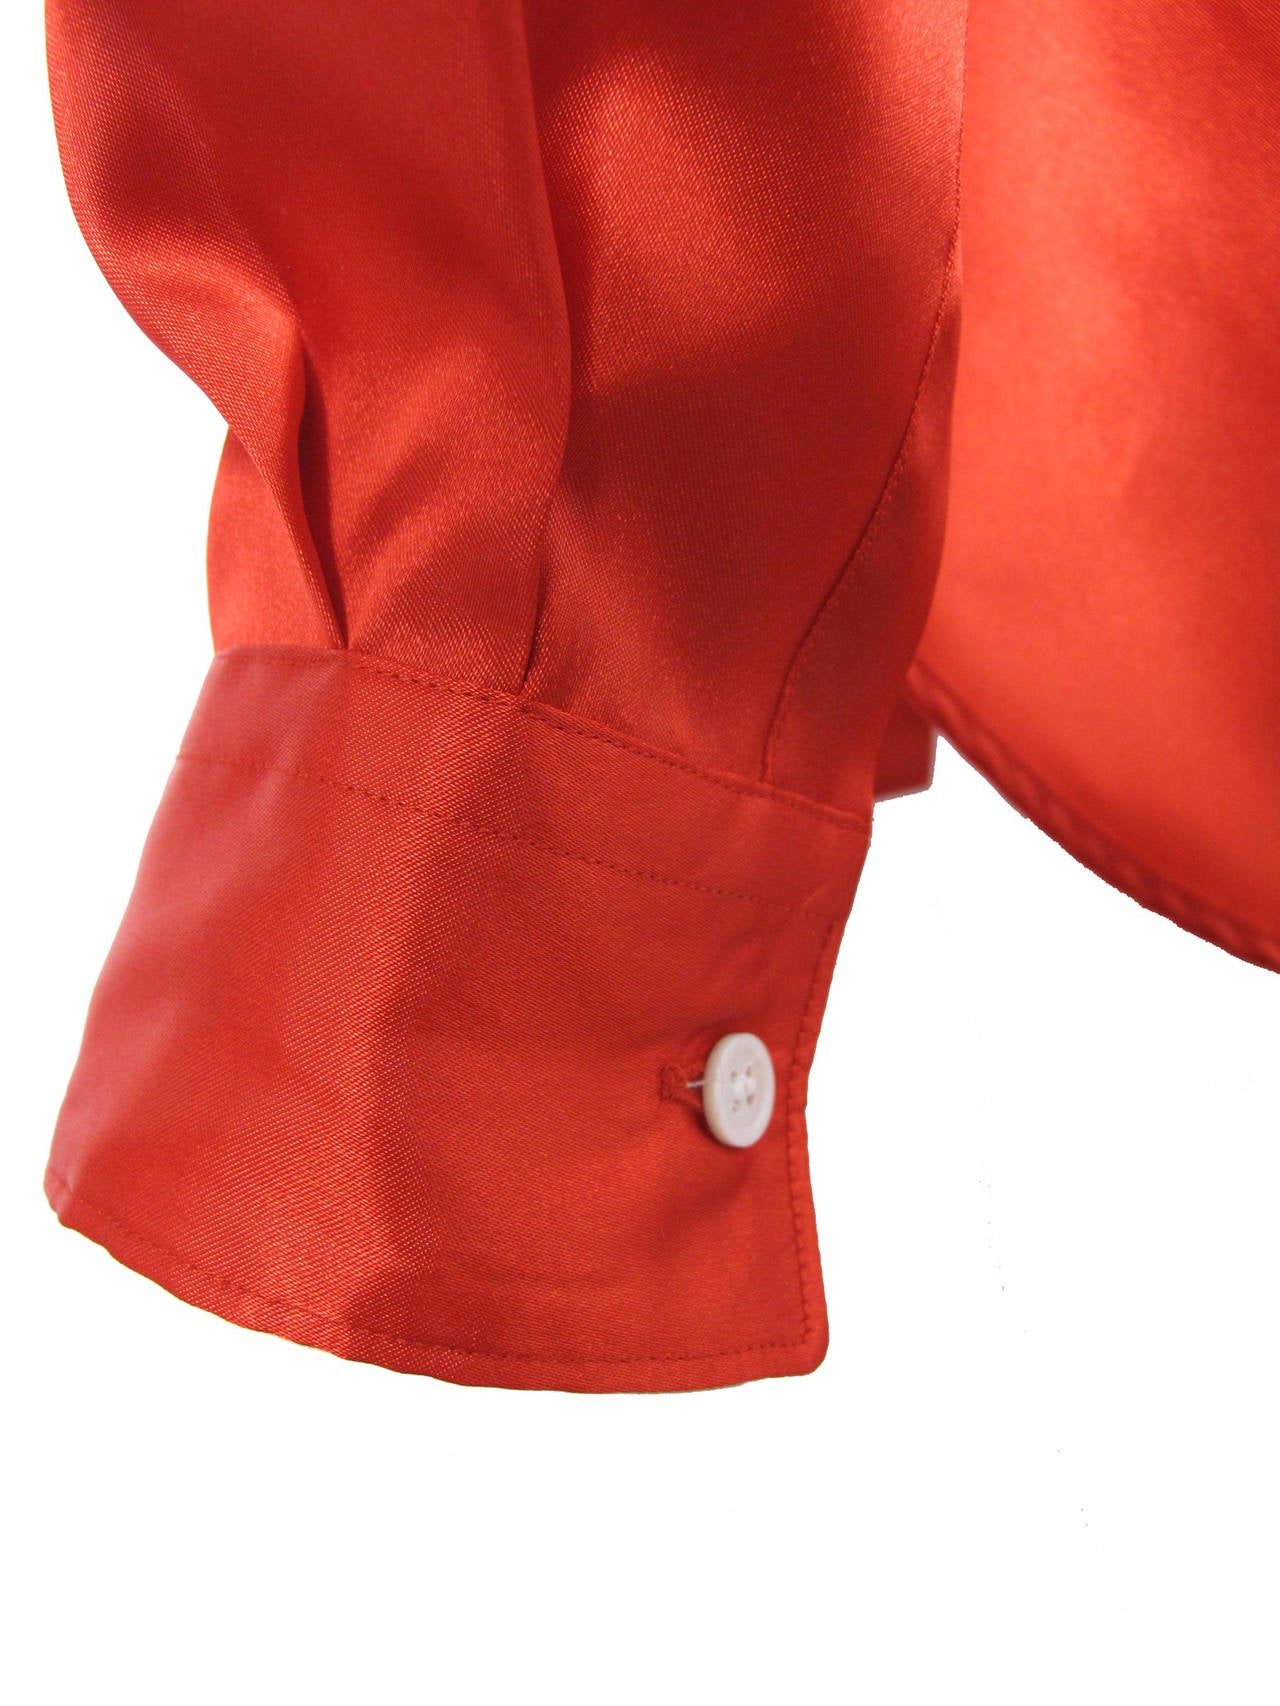 Comme des Garcons Red Shirt,  2008  In Excellent Condition For Sale In Austin, TX